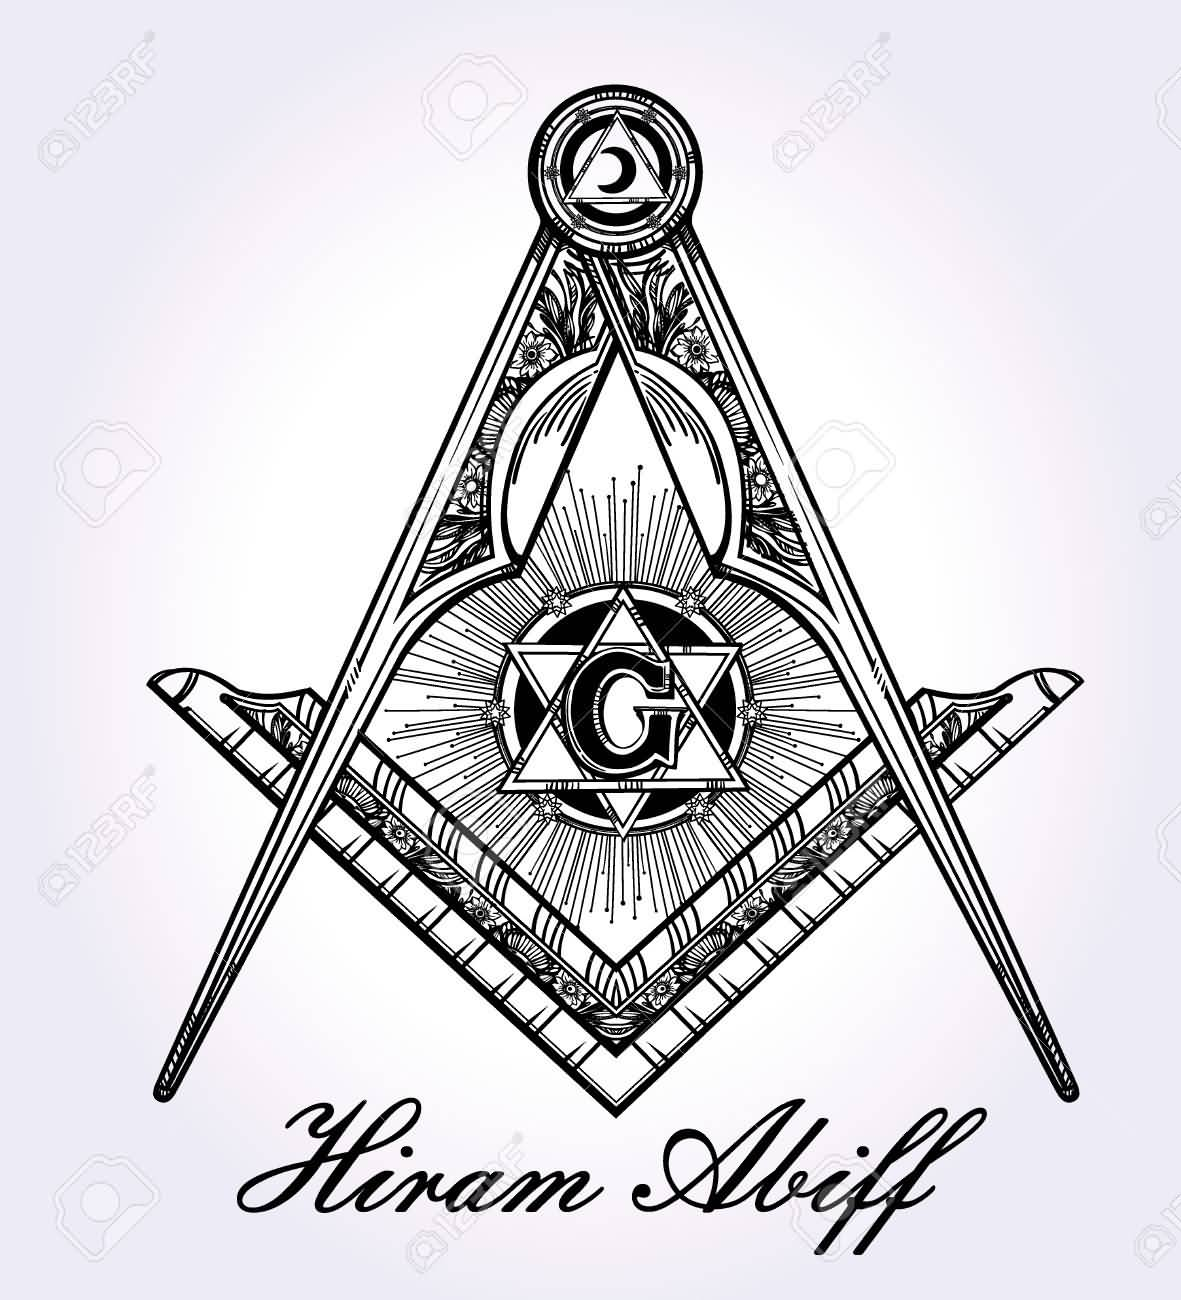 Masonic Symbol Tattoo Design By Hiram Aliff